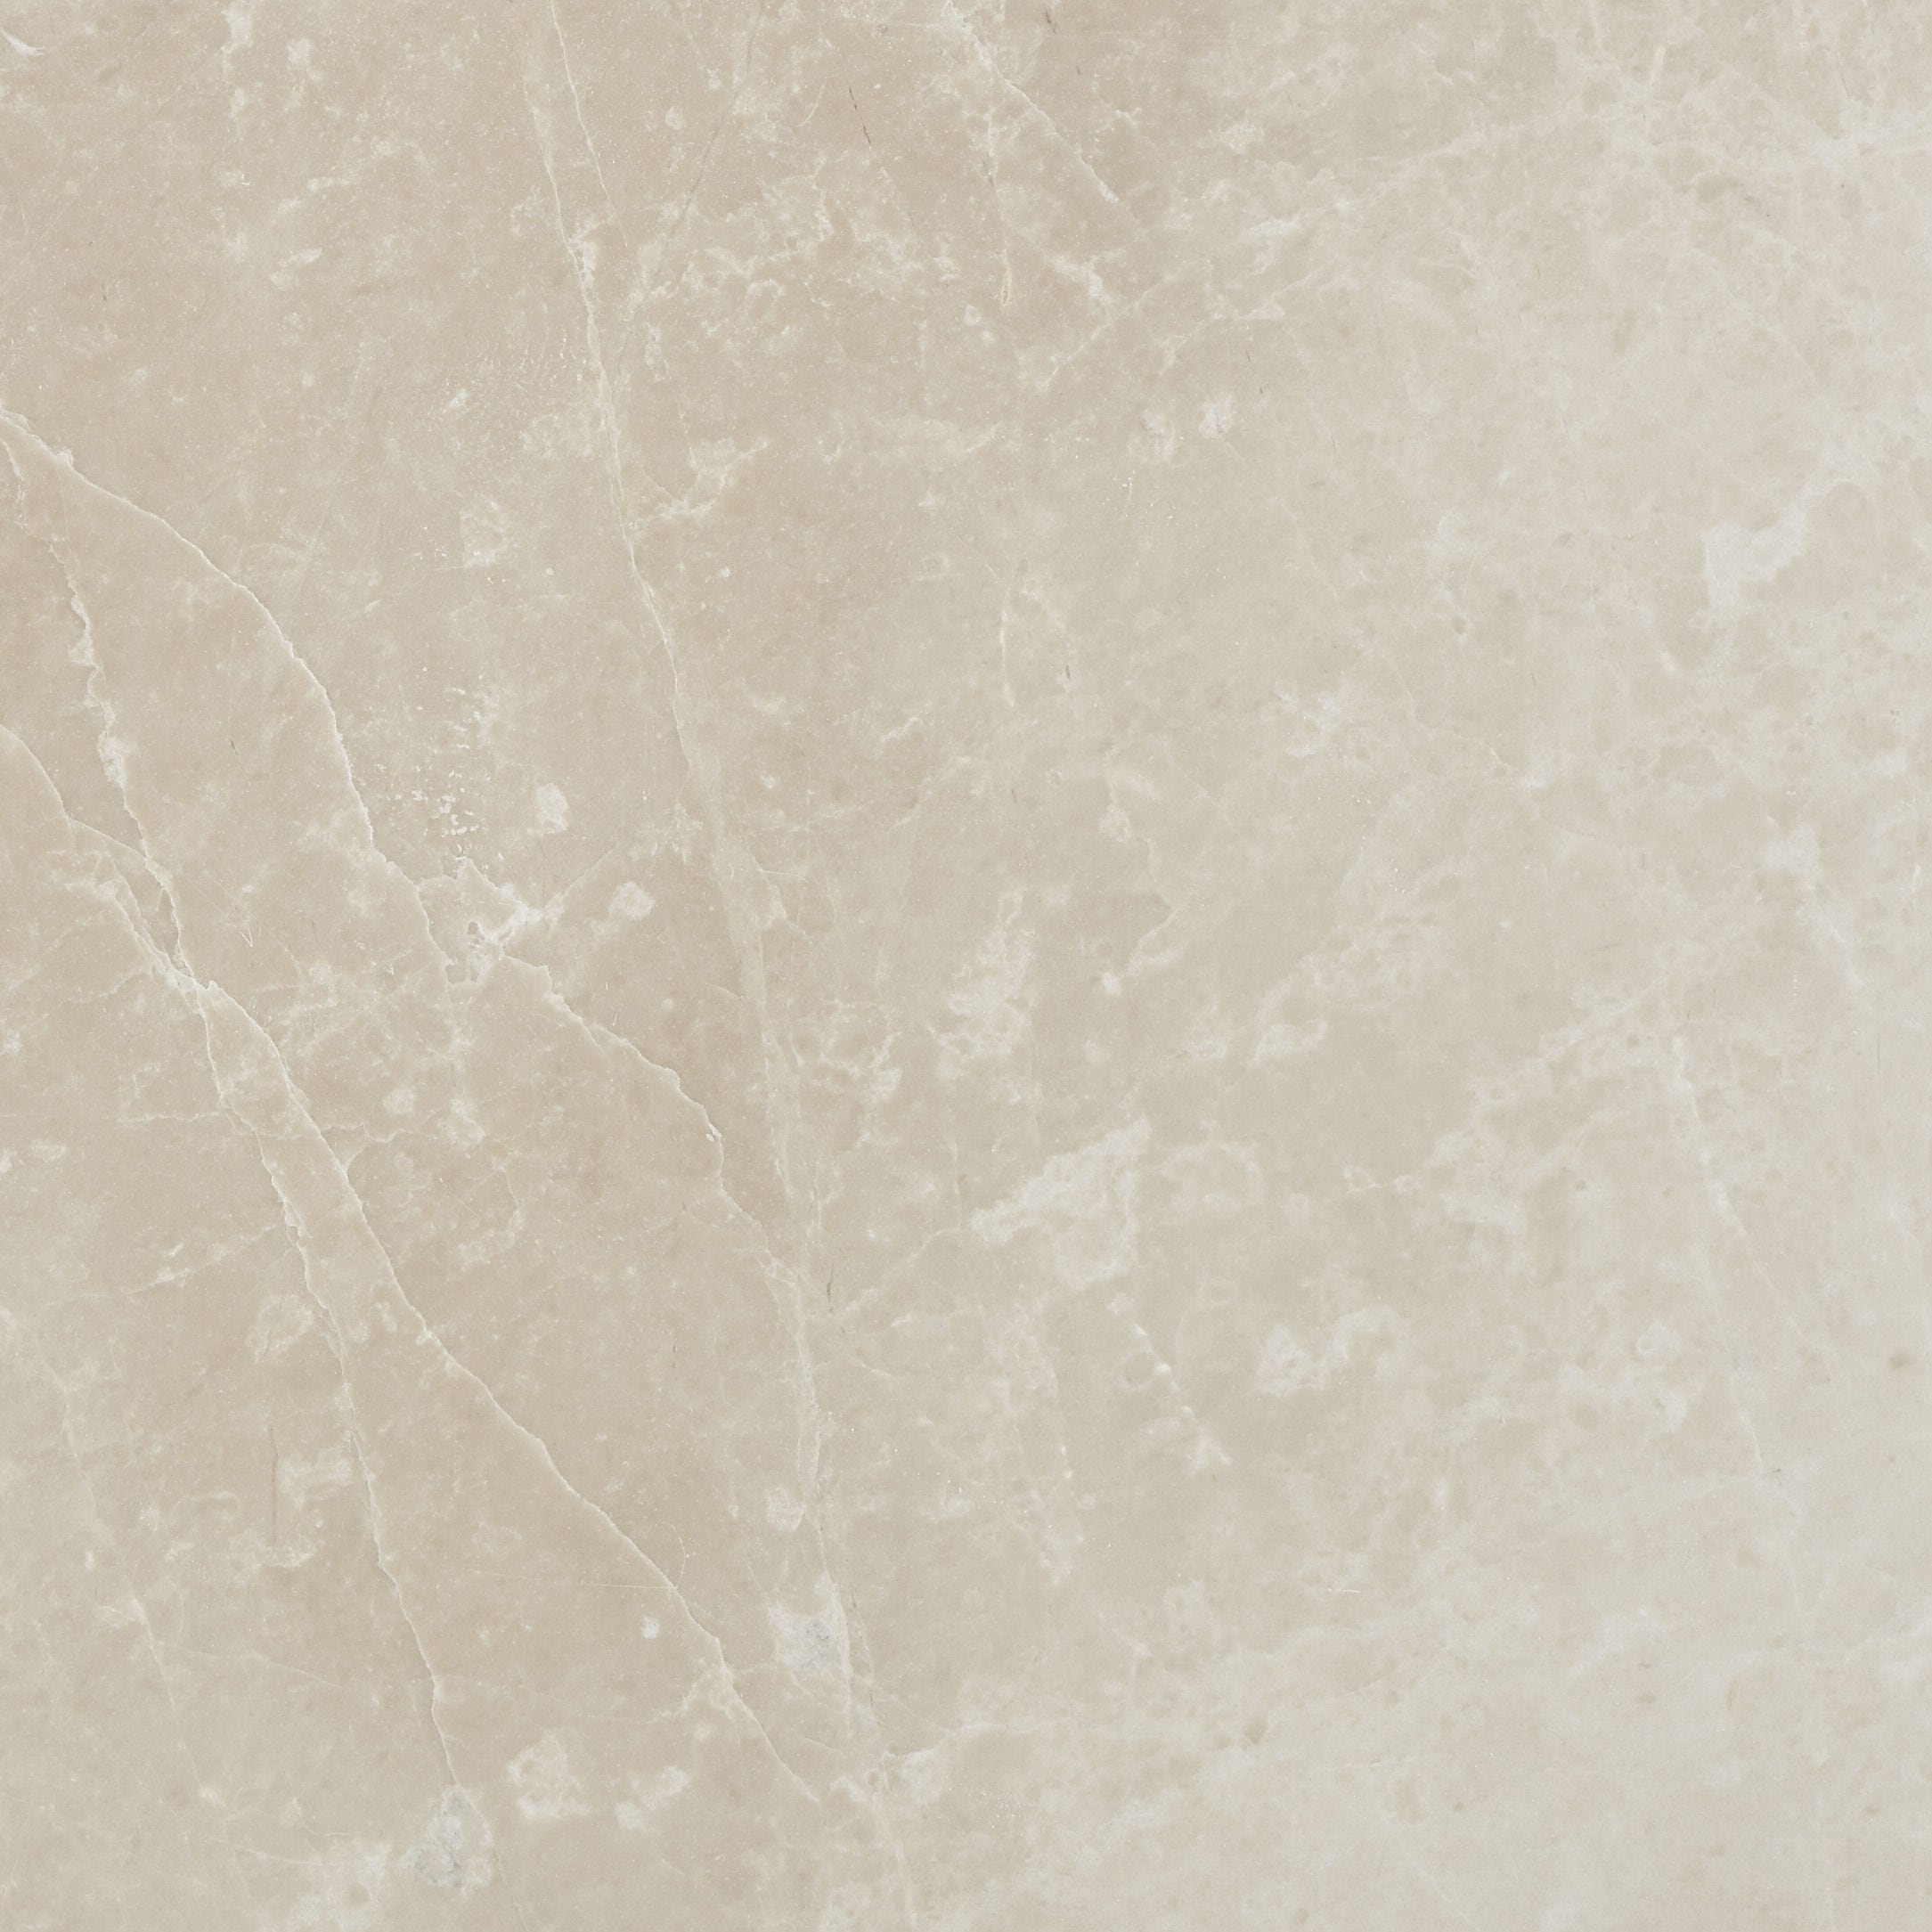 Botticino Polished Marble Tiles Mandarin Stone